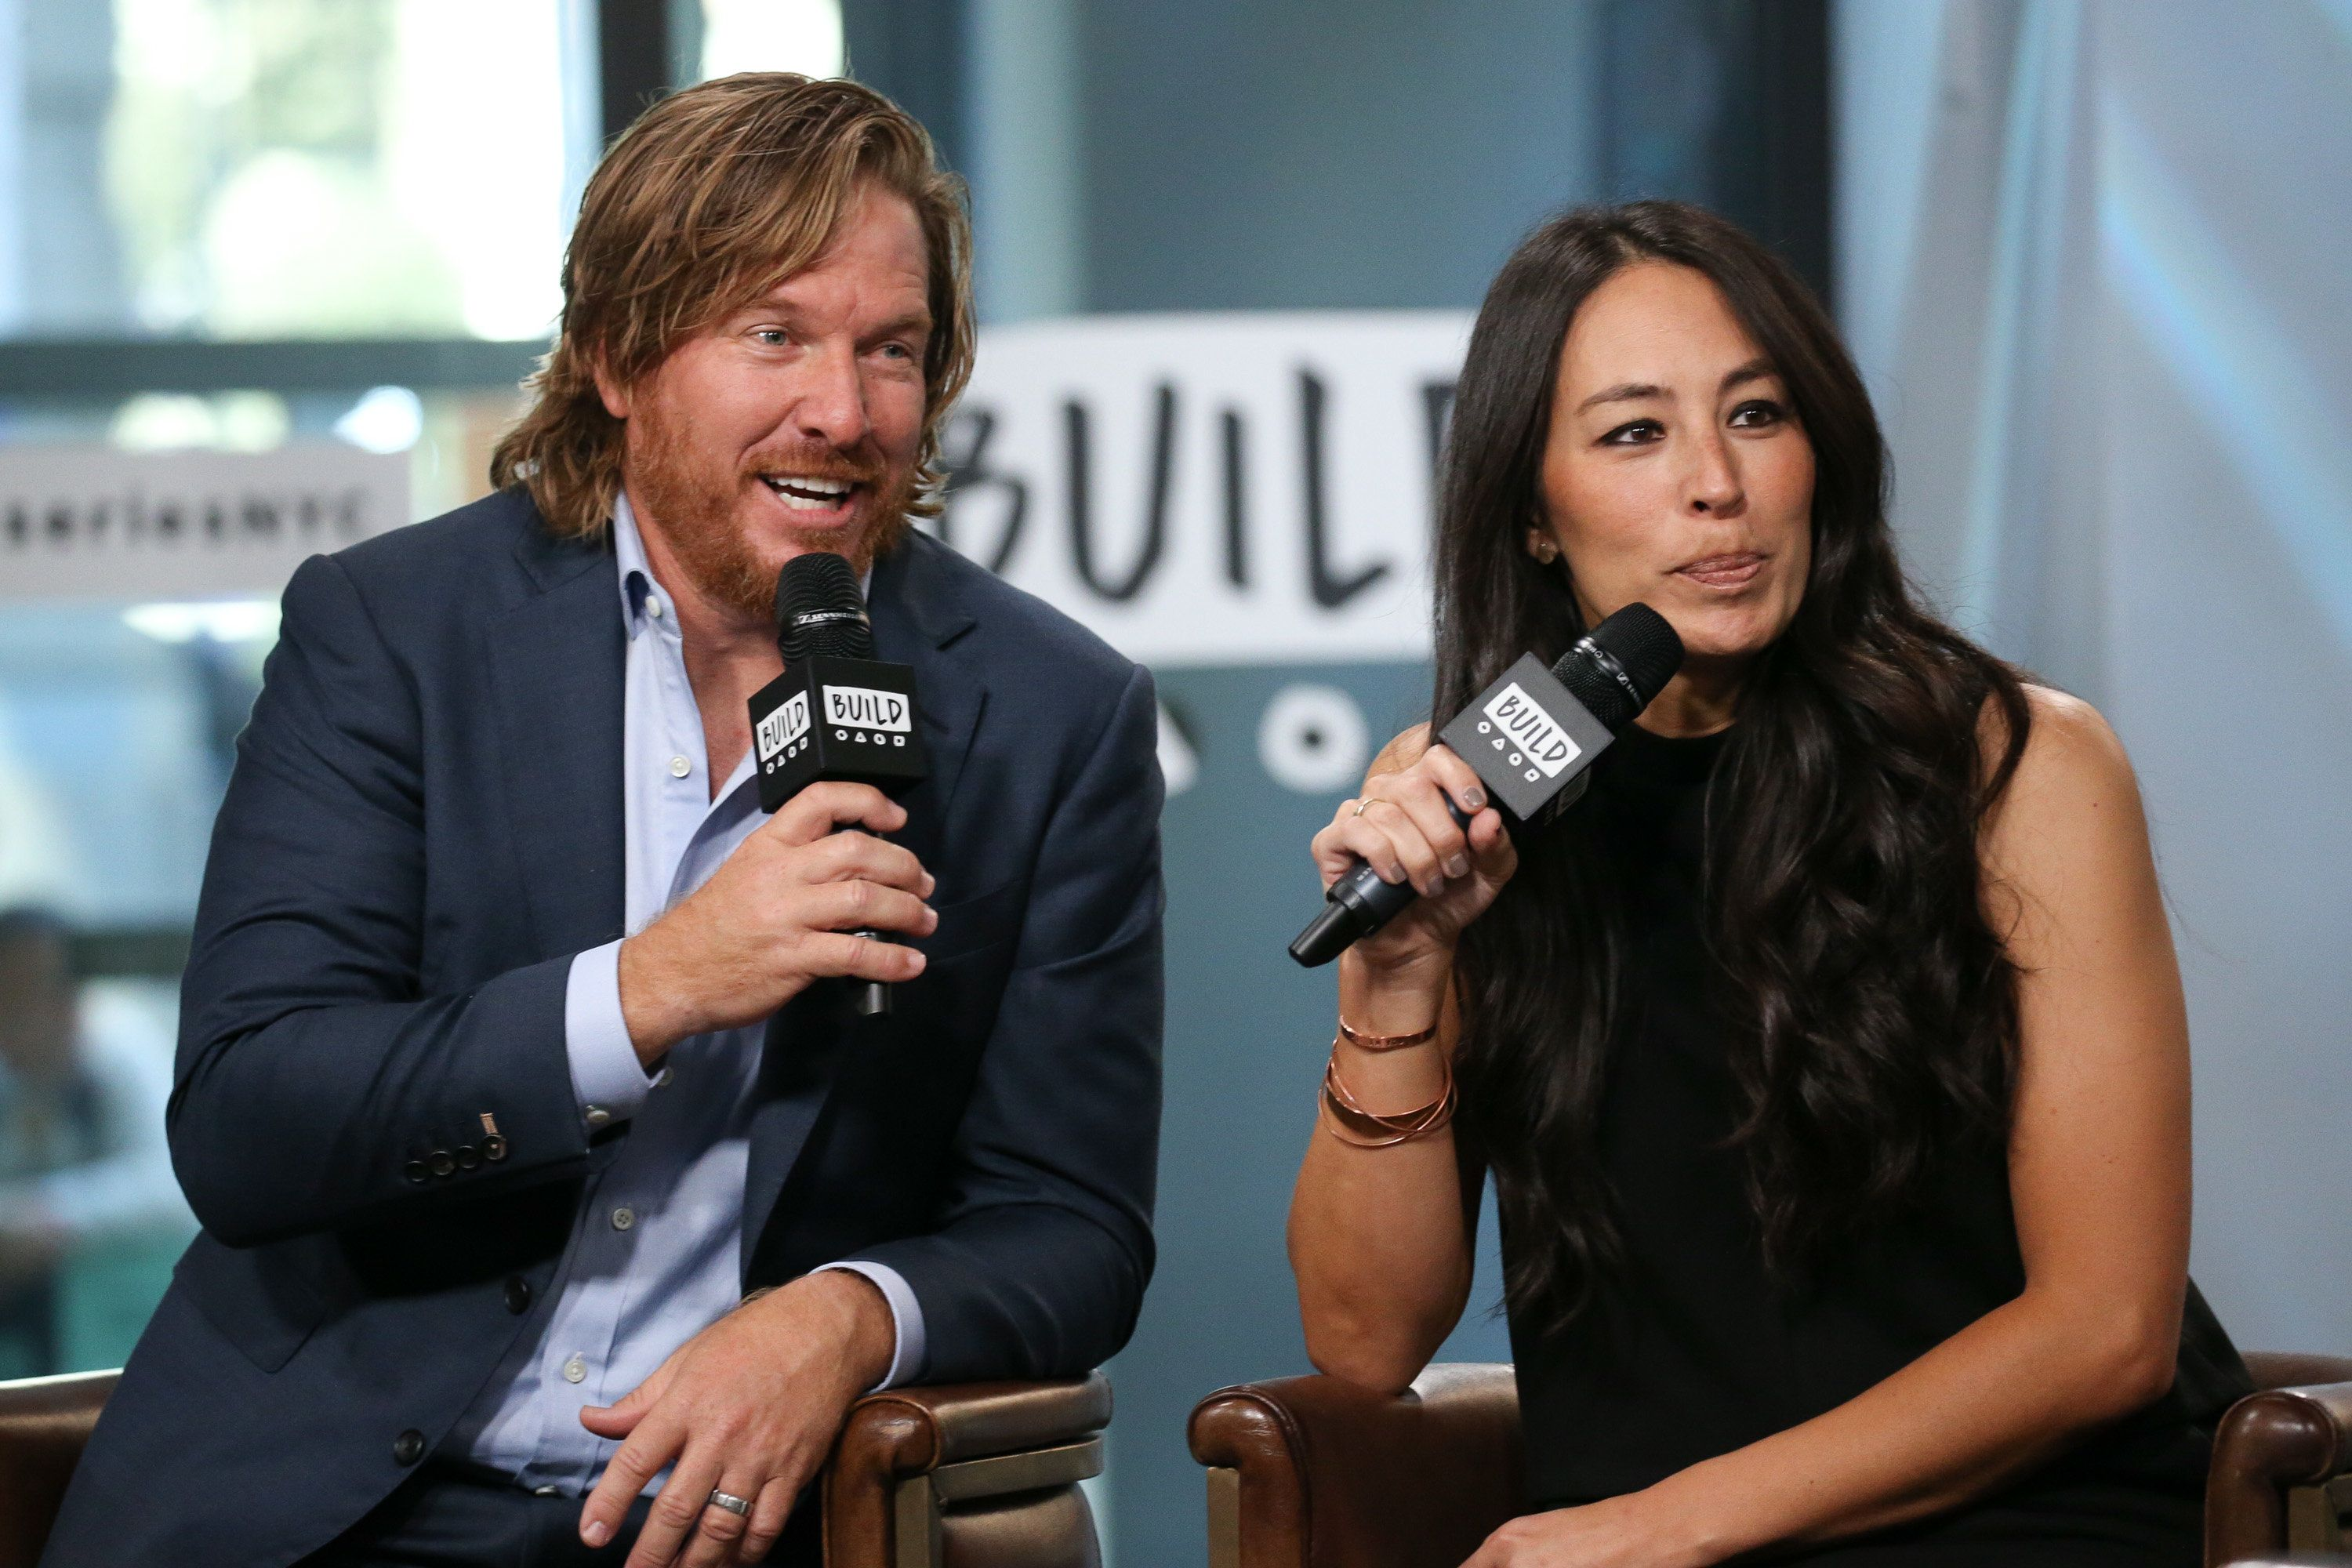 NEW YORK, NY - OCTOBER 18:  Chip Gaines and Joanna Gaines discuss new book, 'Capital Gaines: Smart Things I Learned Doing Stupid Stuff' at Build Studio on October 18, 2017 in New York City.  (Photo by Rob Kim/Getty Images)